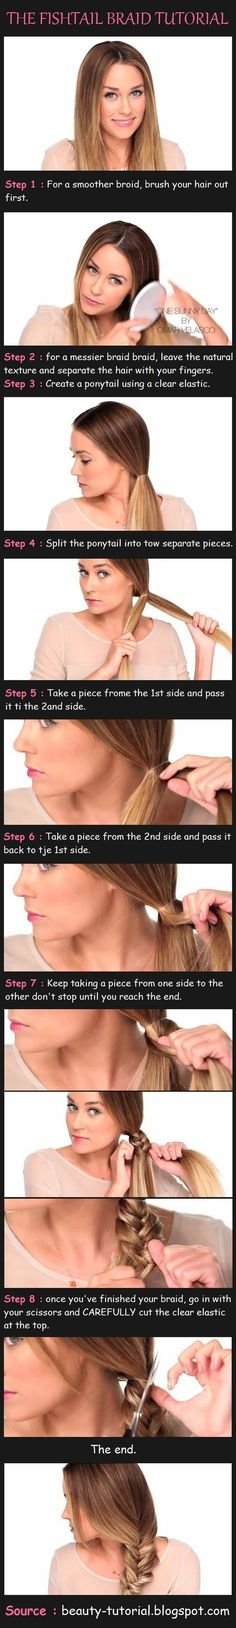 The Fishtail Braid Tutorial ! This is the first fish tail braid tutorial I actually understand ! Pretty Hairstyles, Braided Hairstyles, Latest Hairstyles, Hair Day, Hair Hacks, Hair Tips, Hair Inspiration, Your Hair, Hair Makeup